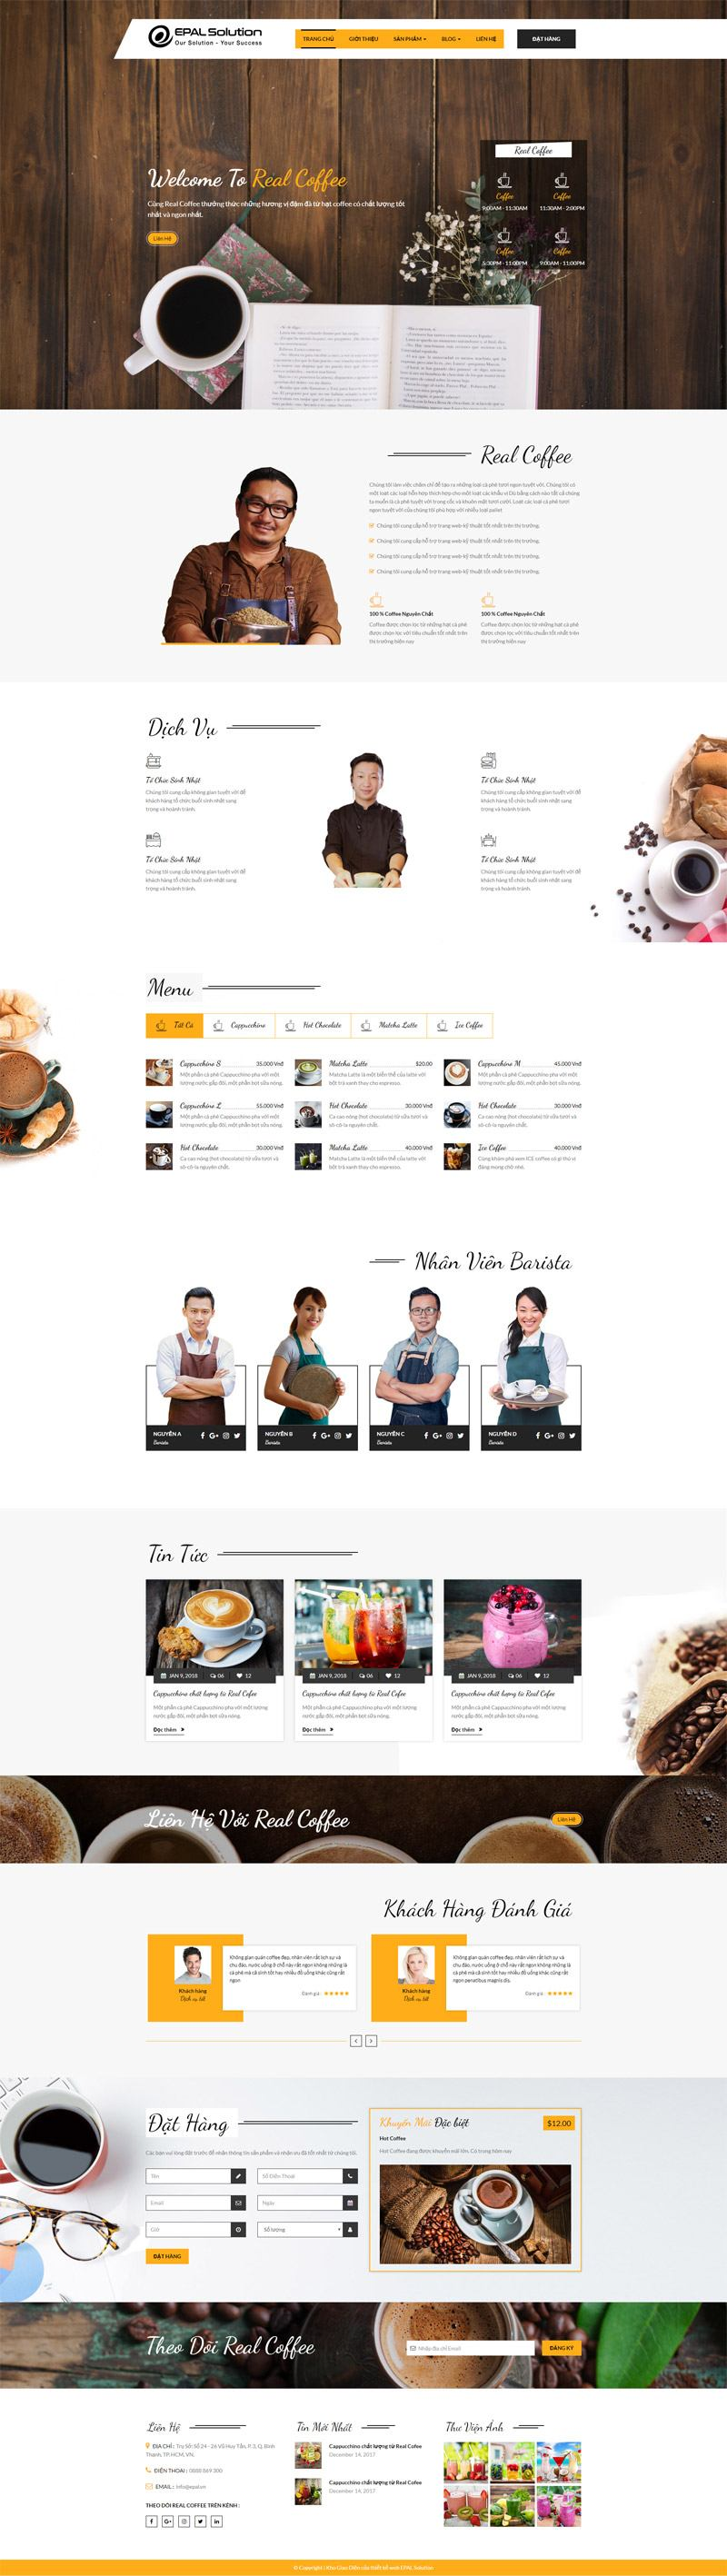 giao-dien-website-am-thuc-coffee